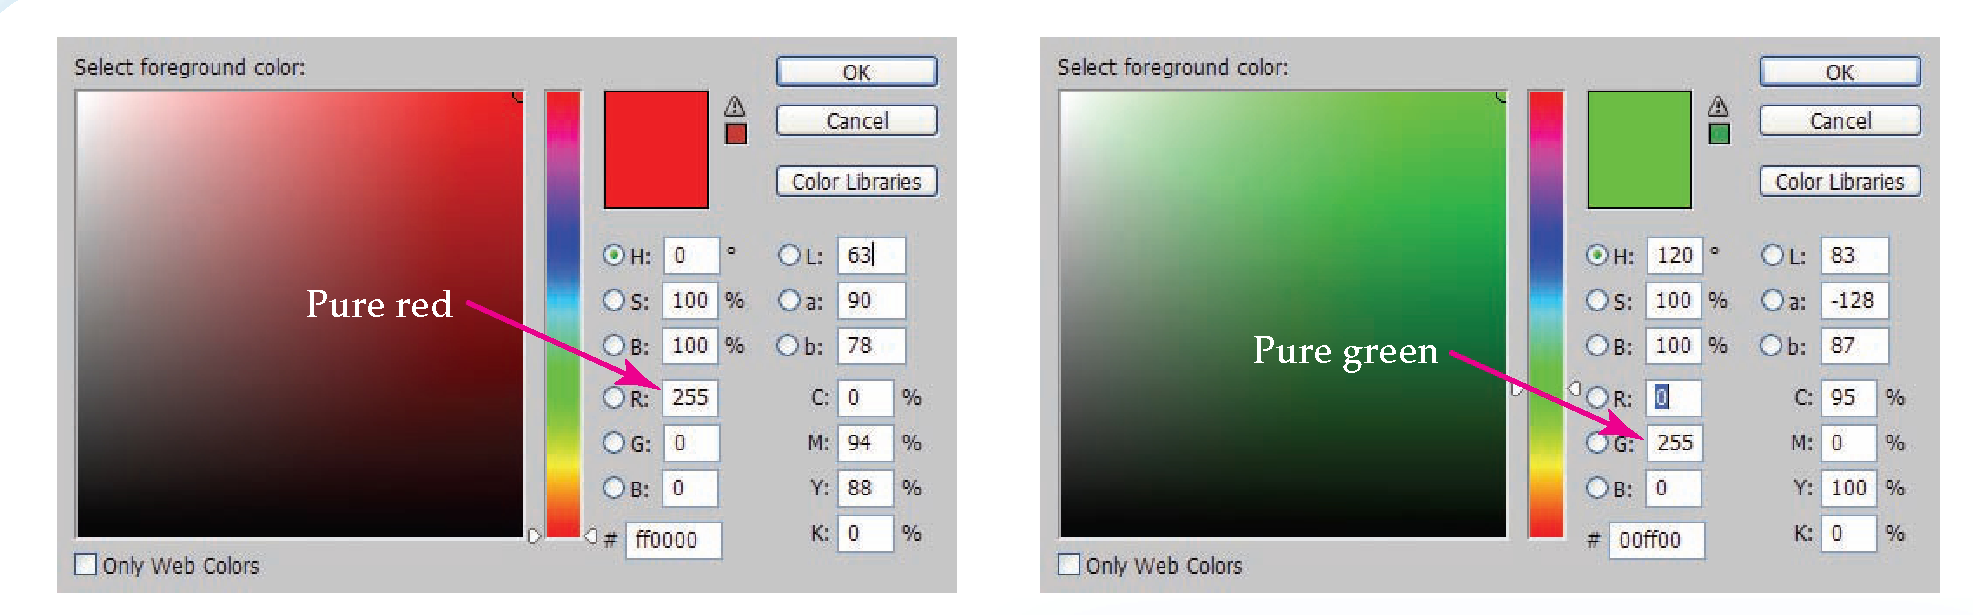 Using Color Libraries and Options (Communicating with Color ...